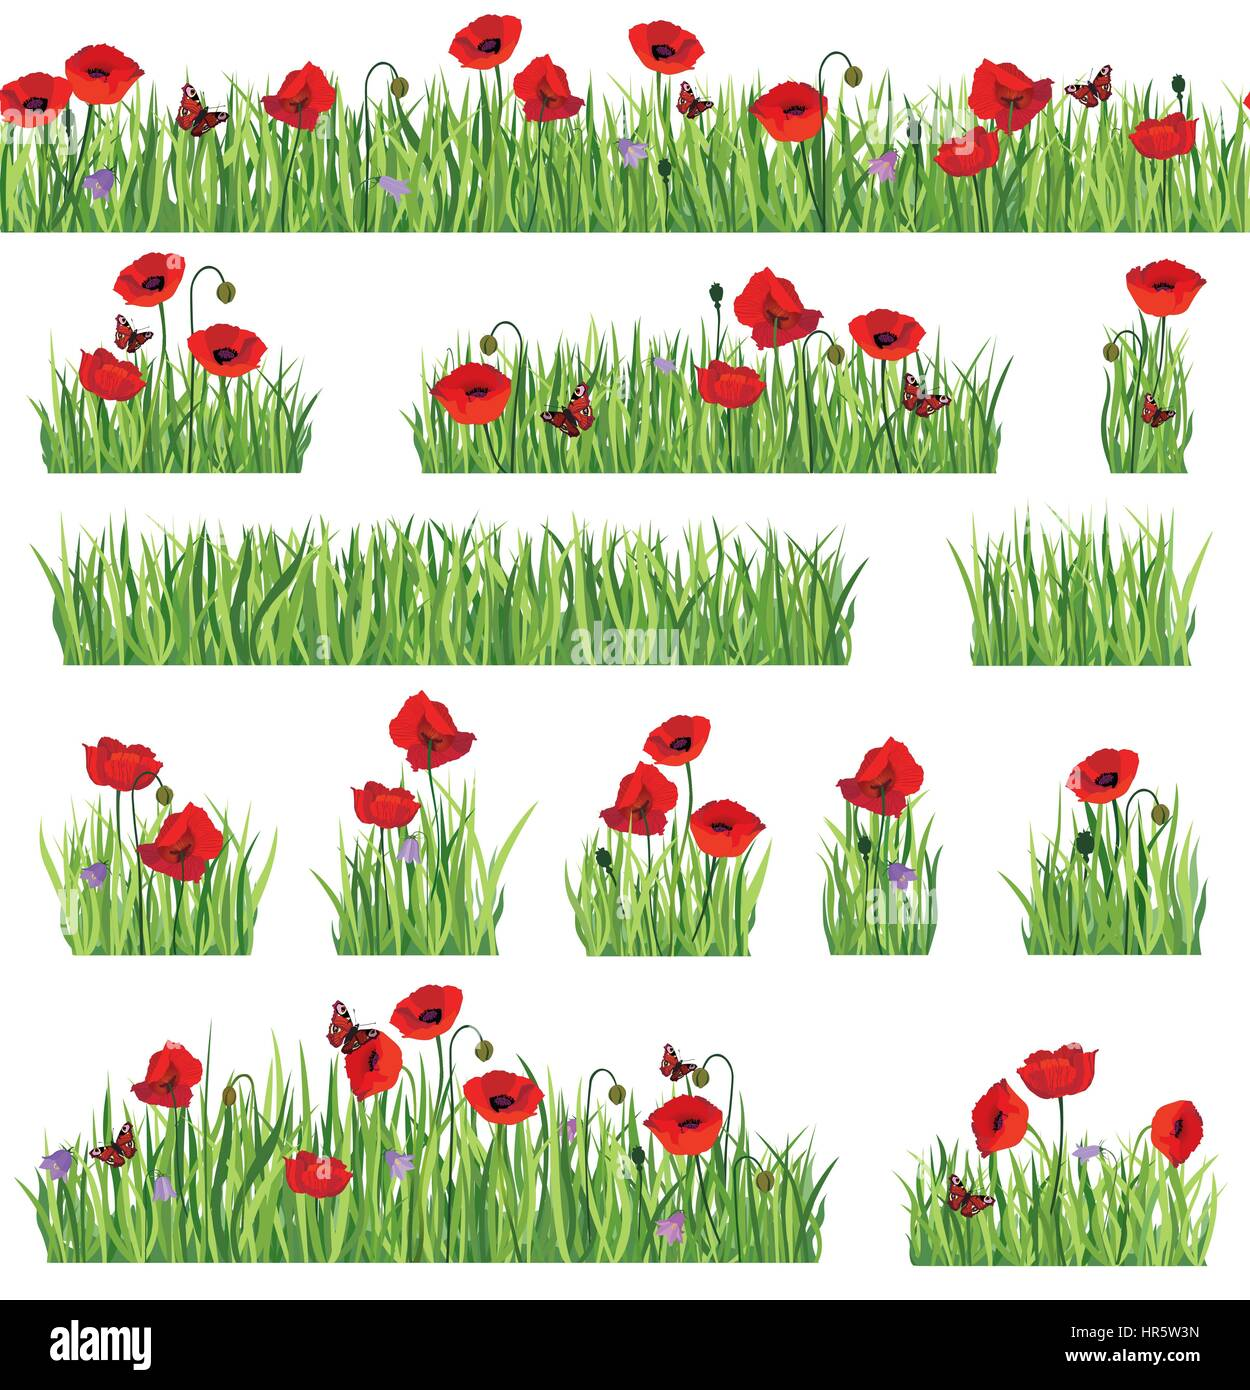 Grass border background set. Summer icon and seamless floral frame collection. - Stock Vector